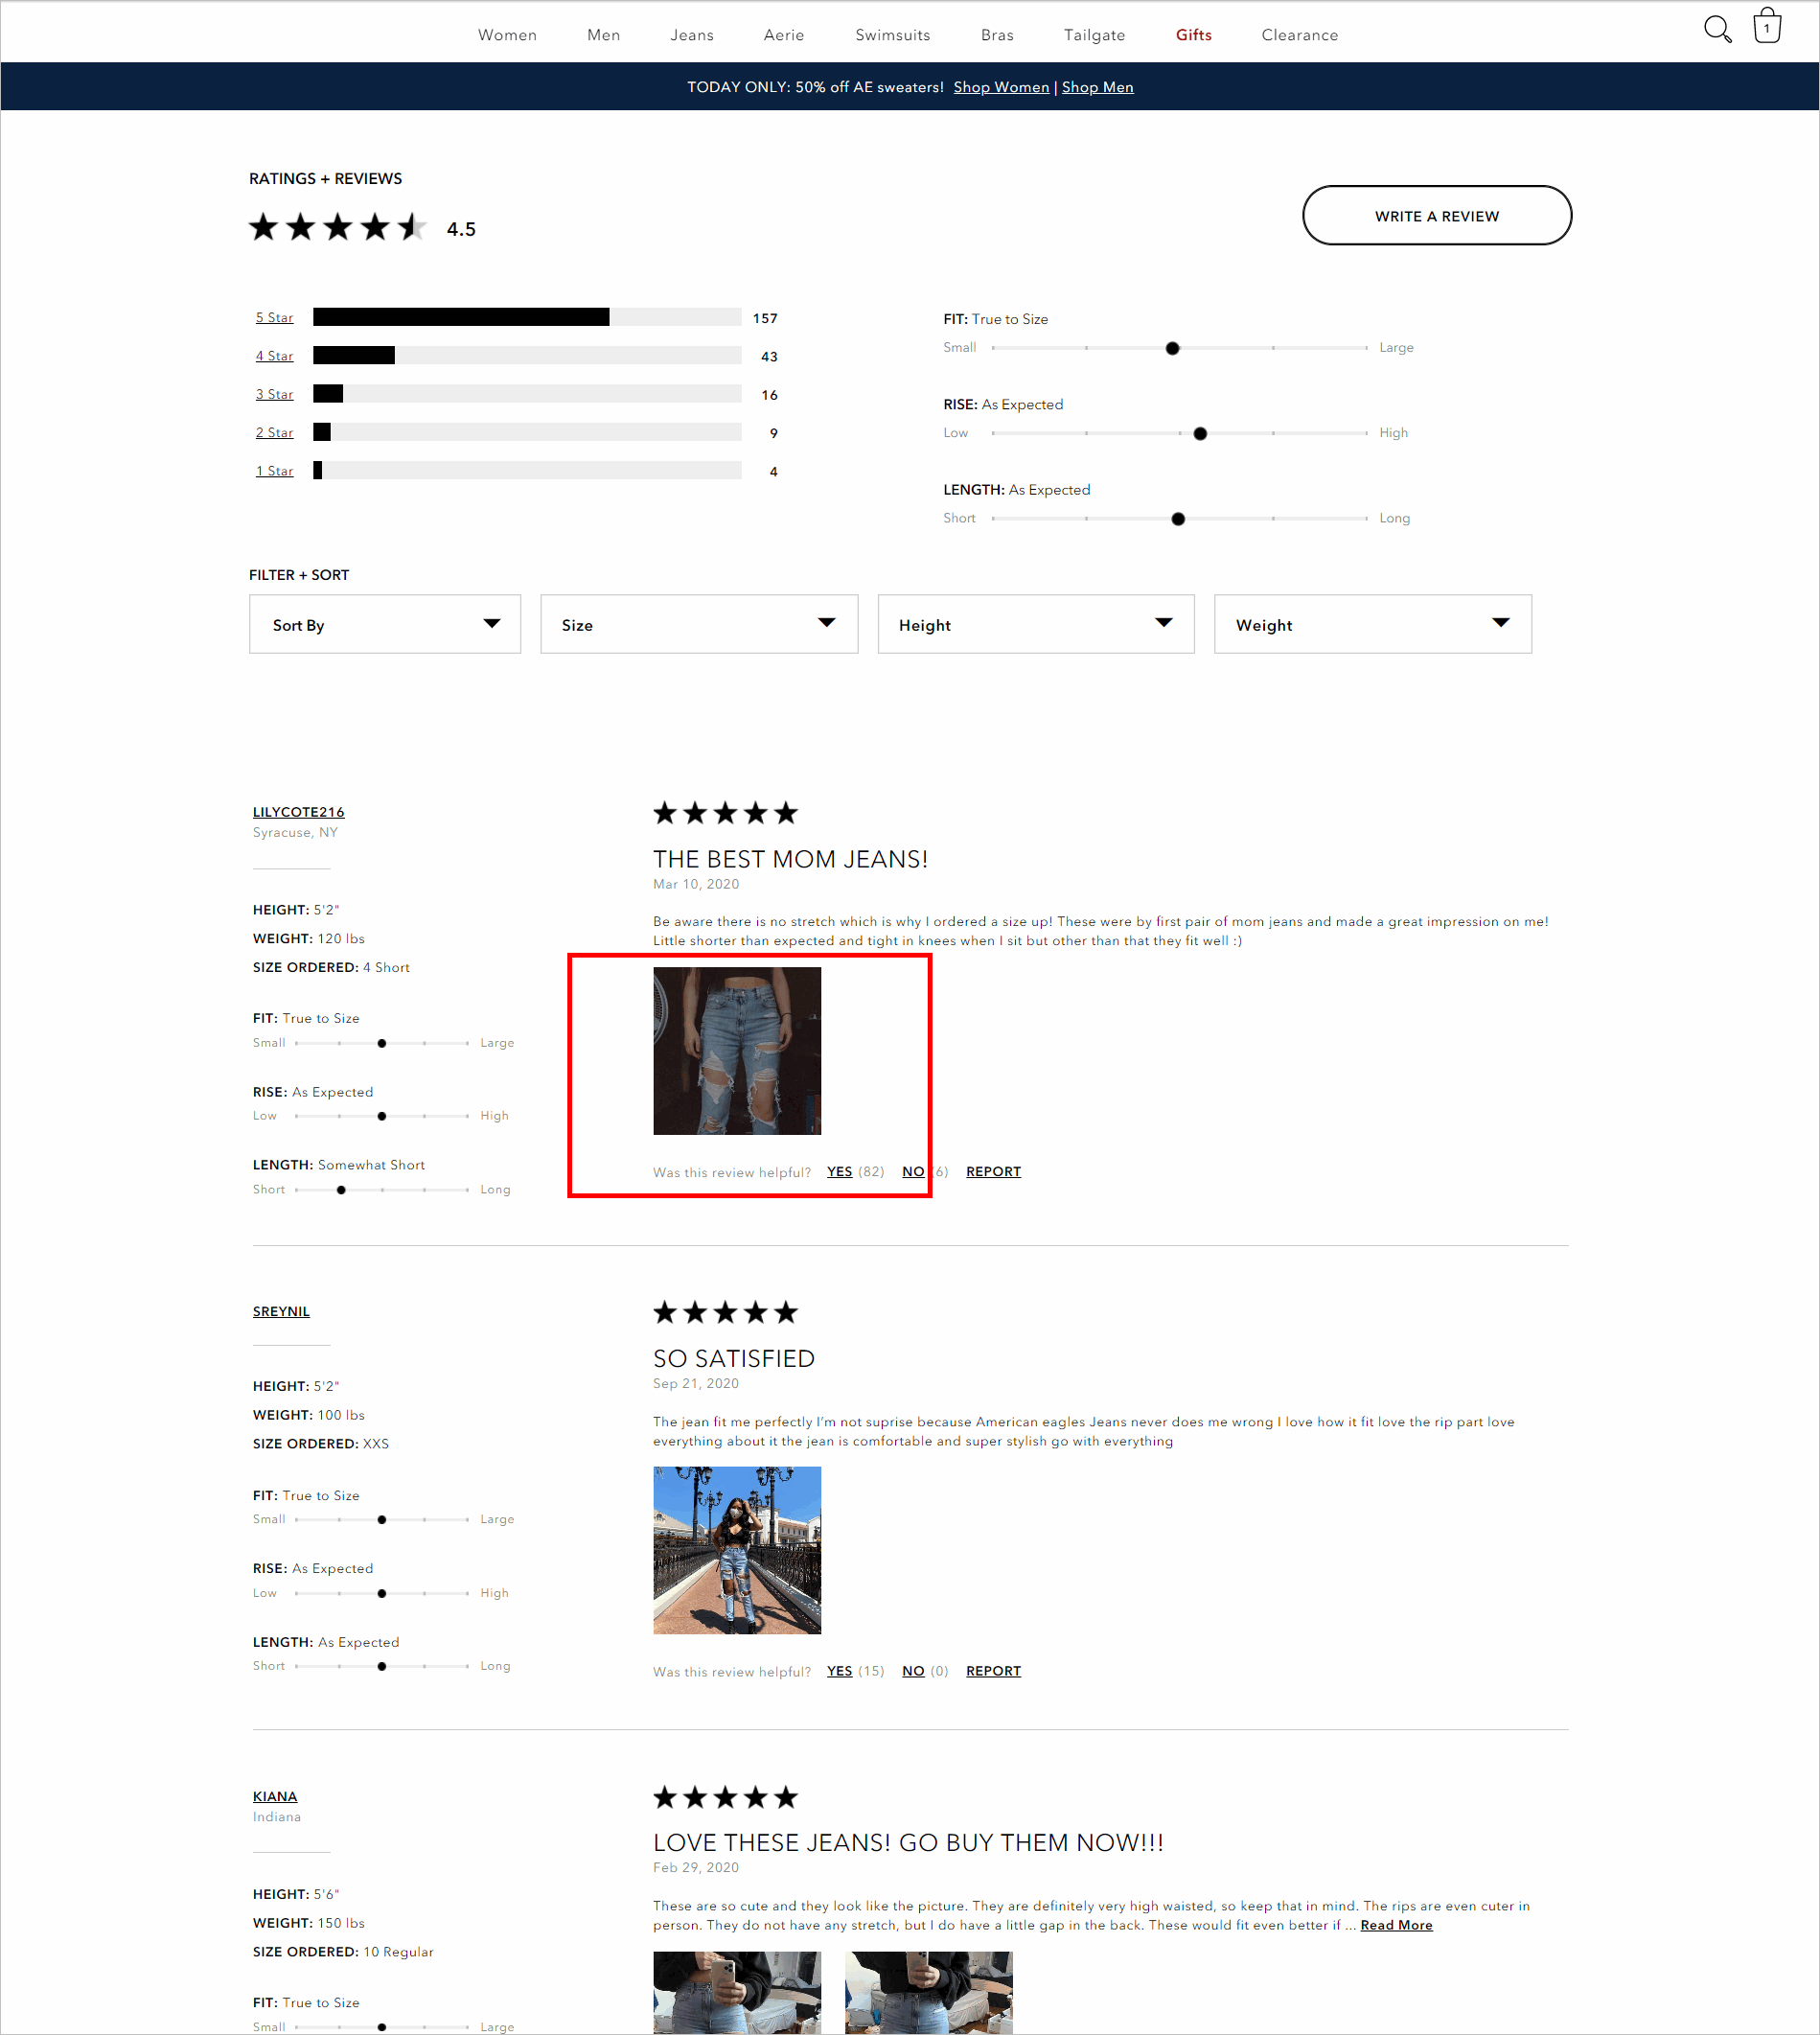 optimized ecommerce customer reviews example - reviews section of ae.com's product detail page allows shoppers to filter by size, height, and weight. reviews also include user-submitted images.